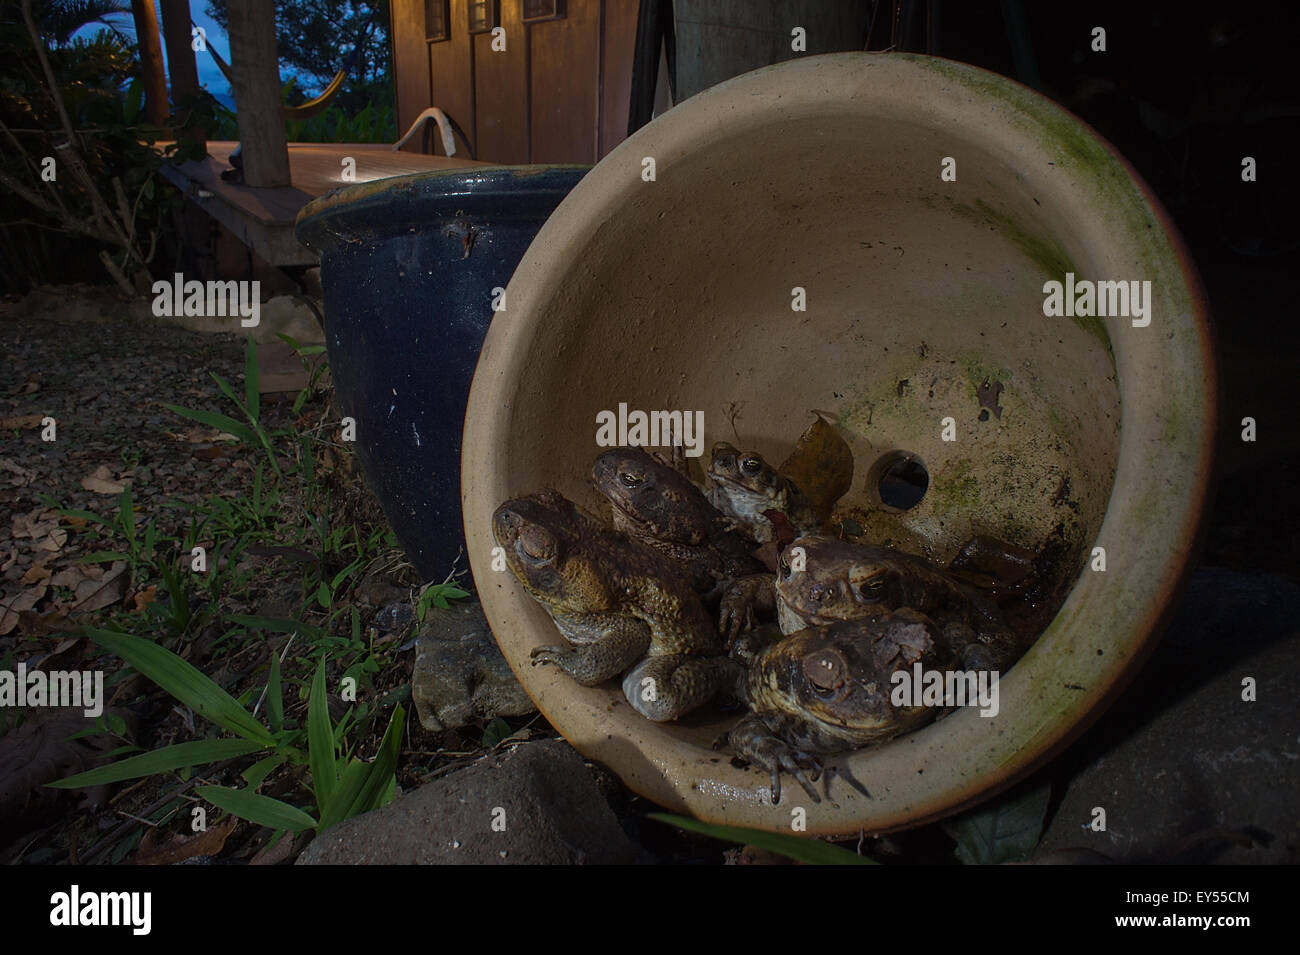 Cane Toads in plant pot - Fiji - Stock Image